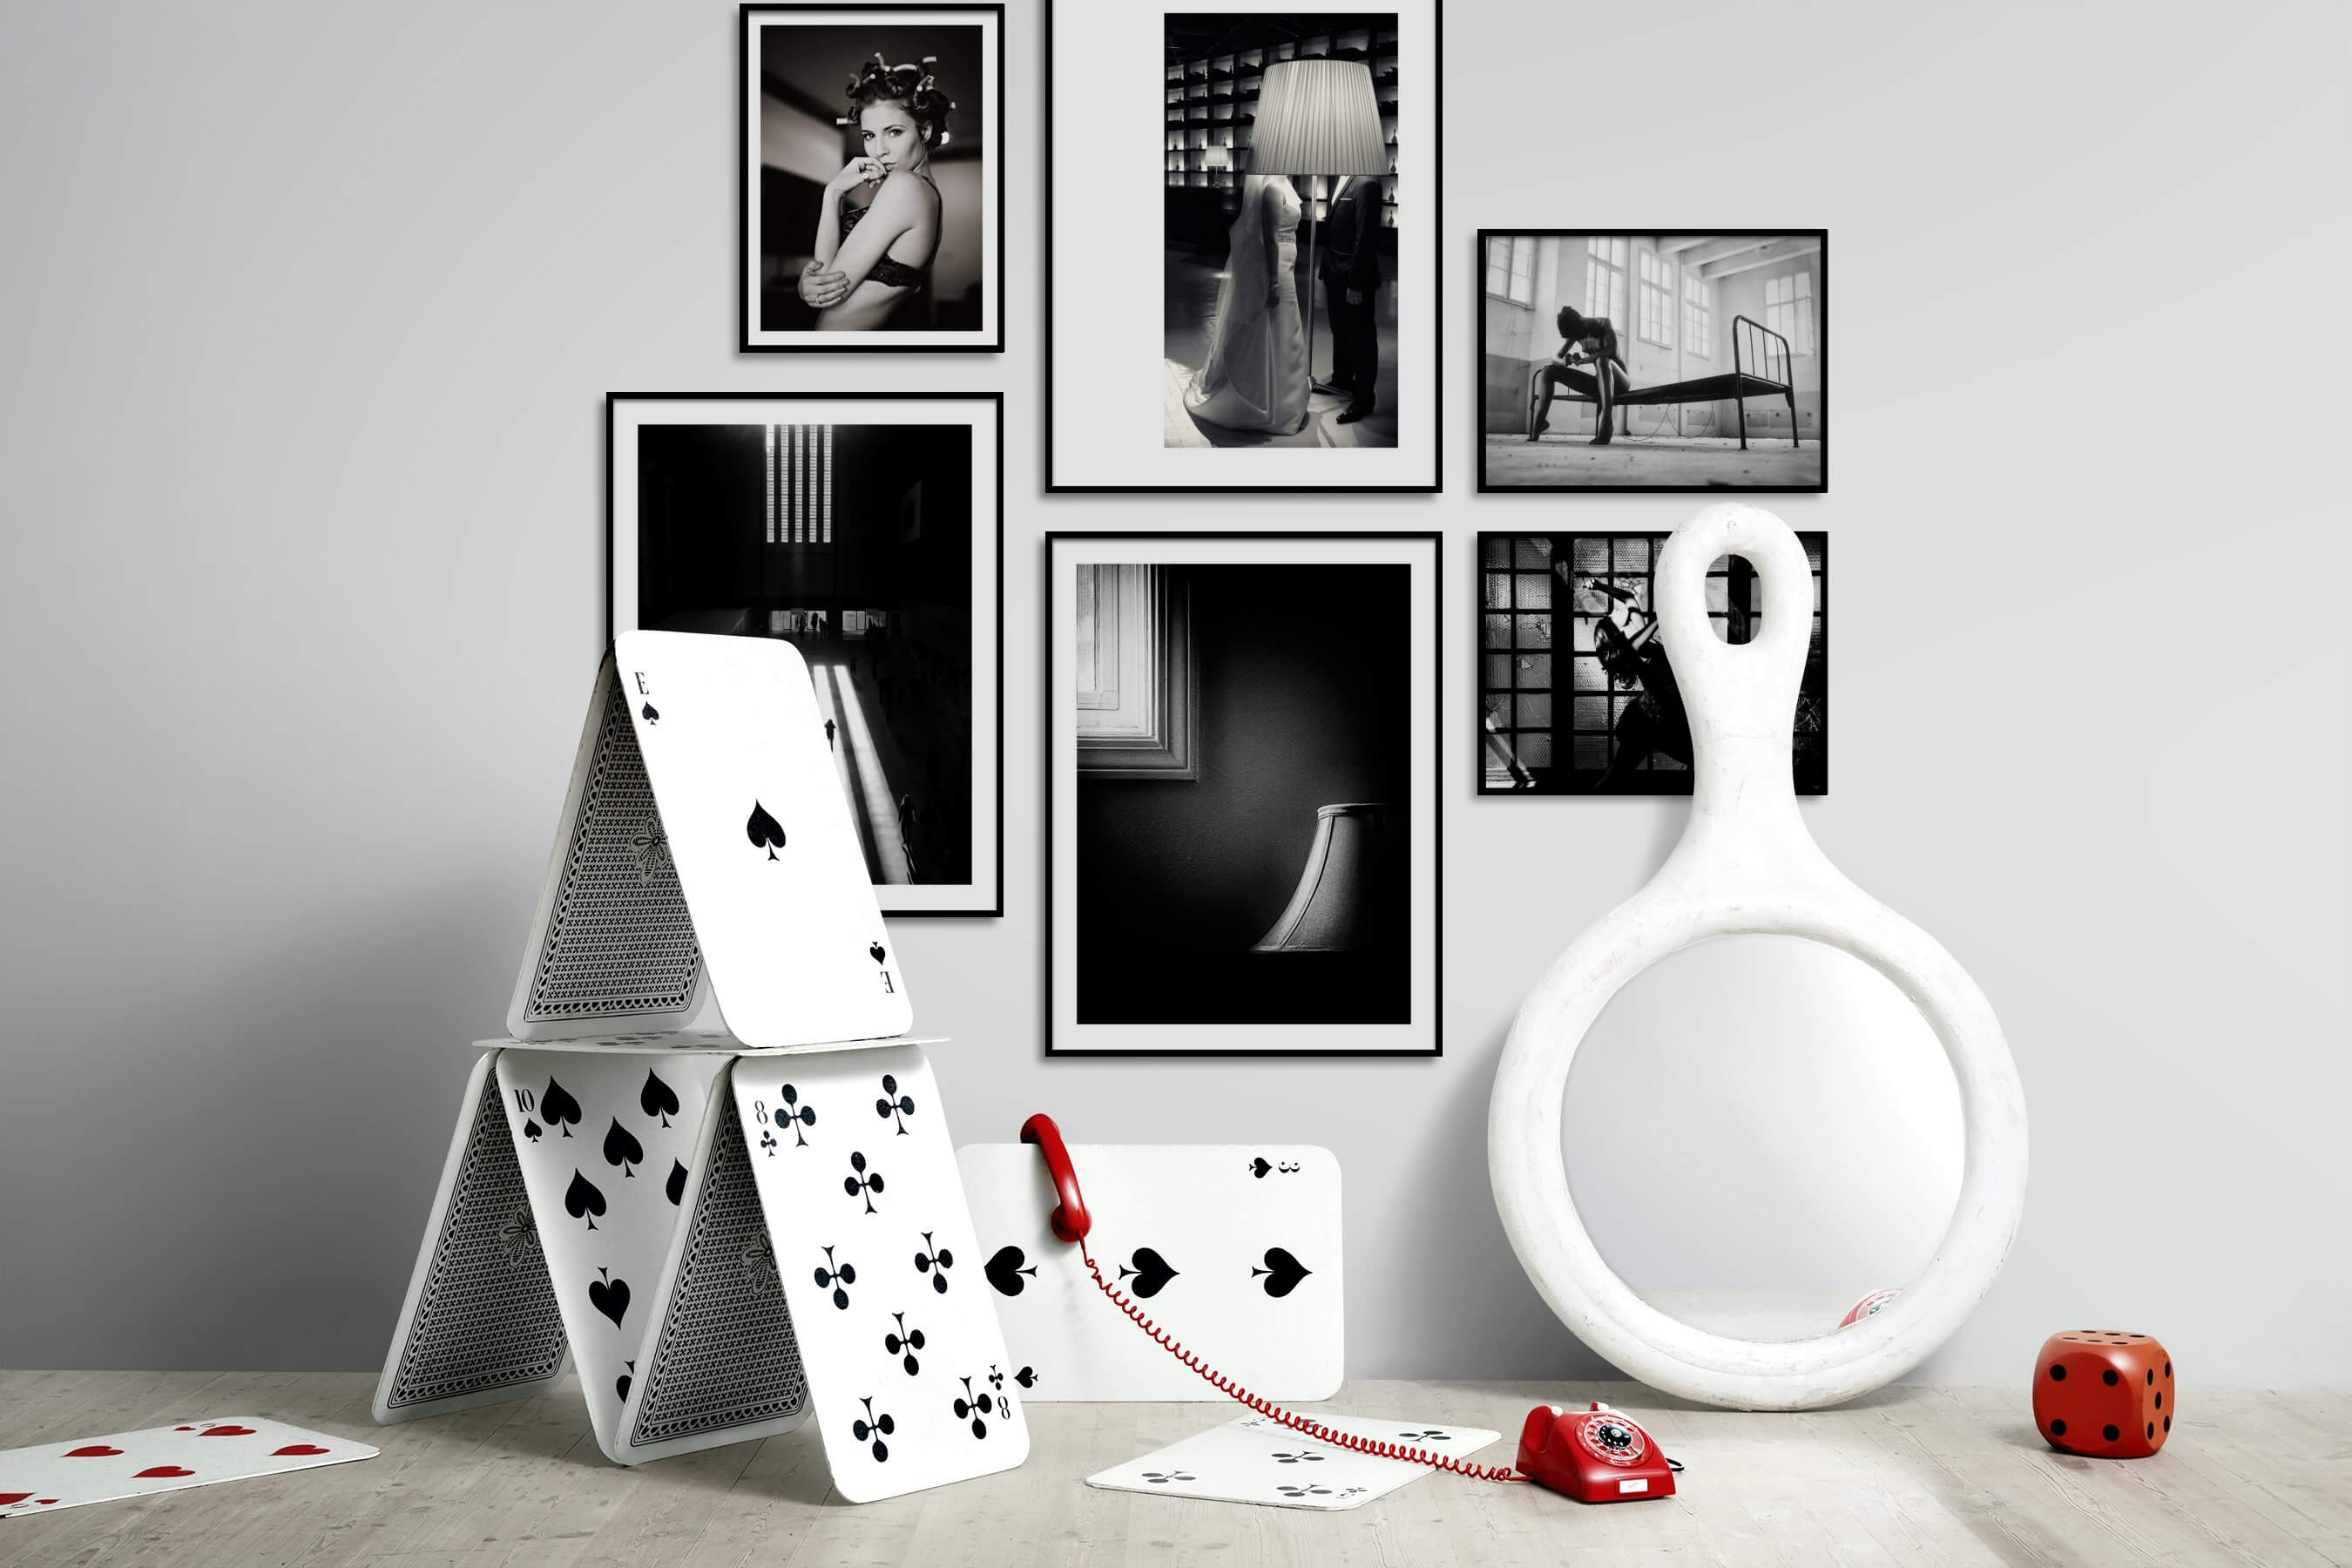 Gallery wall idea with six framed pictures arranged on a wall depicting Fashion & Beauty, Black & White, Vintage, Artsy, For the Moderate, City Life, and For the Minimalist